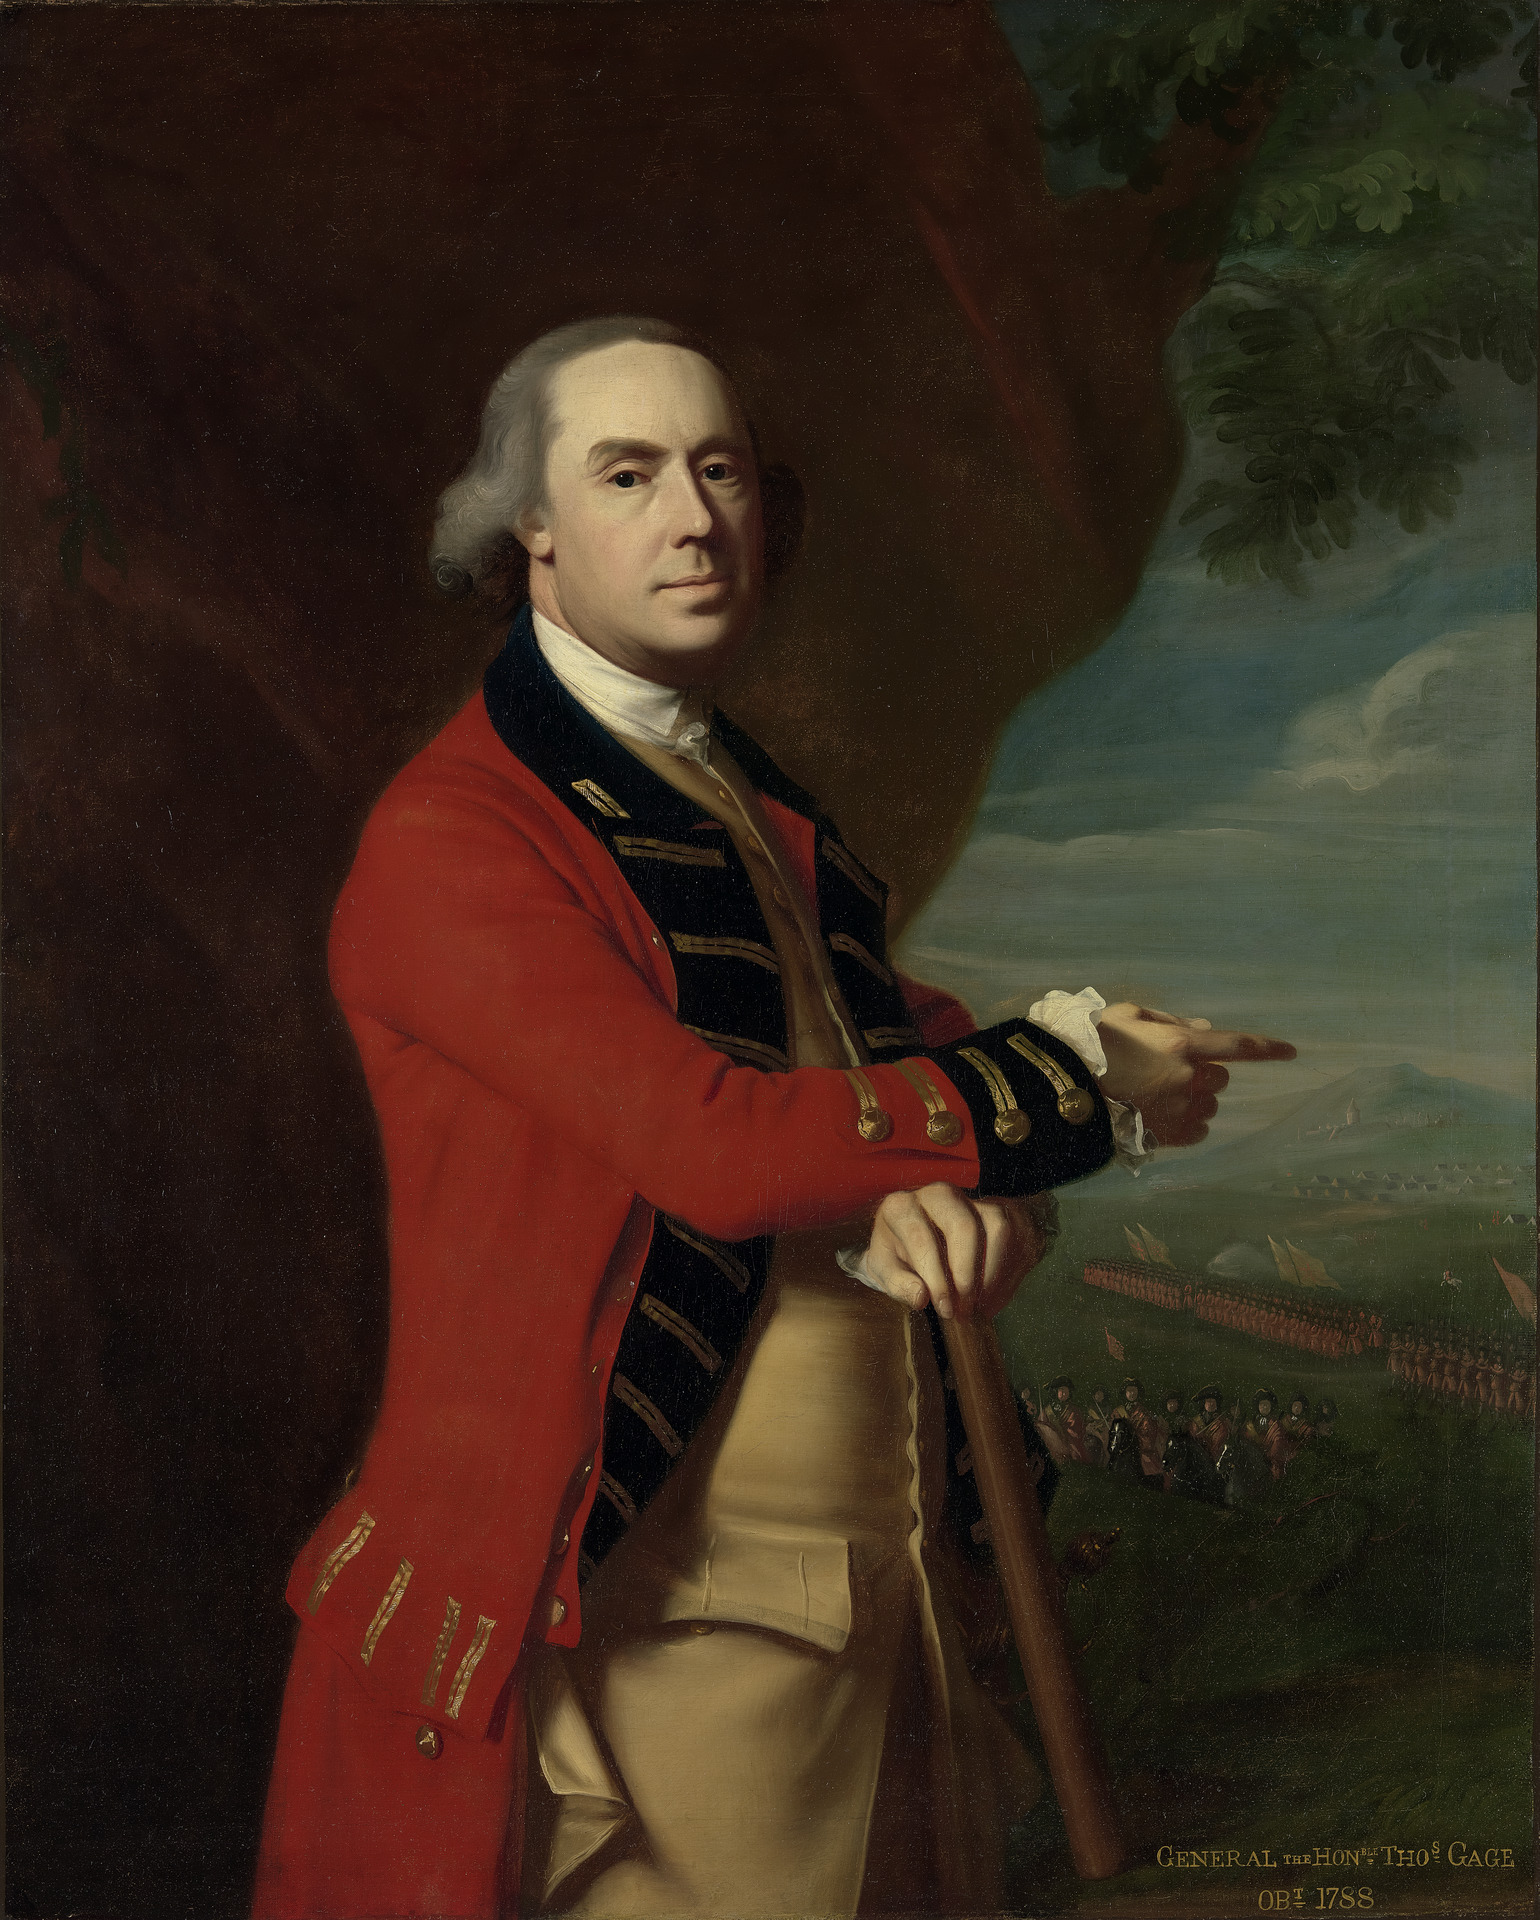 General Thomas Gage, By John Singleton Copley, ca. 1768. Paul Mellon Collection [B1977.14.45]. Courtesy Yale Center for British Art, New Haven, CT.